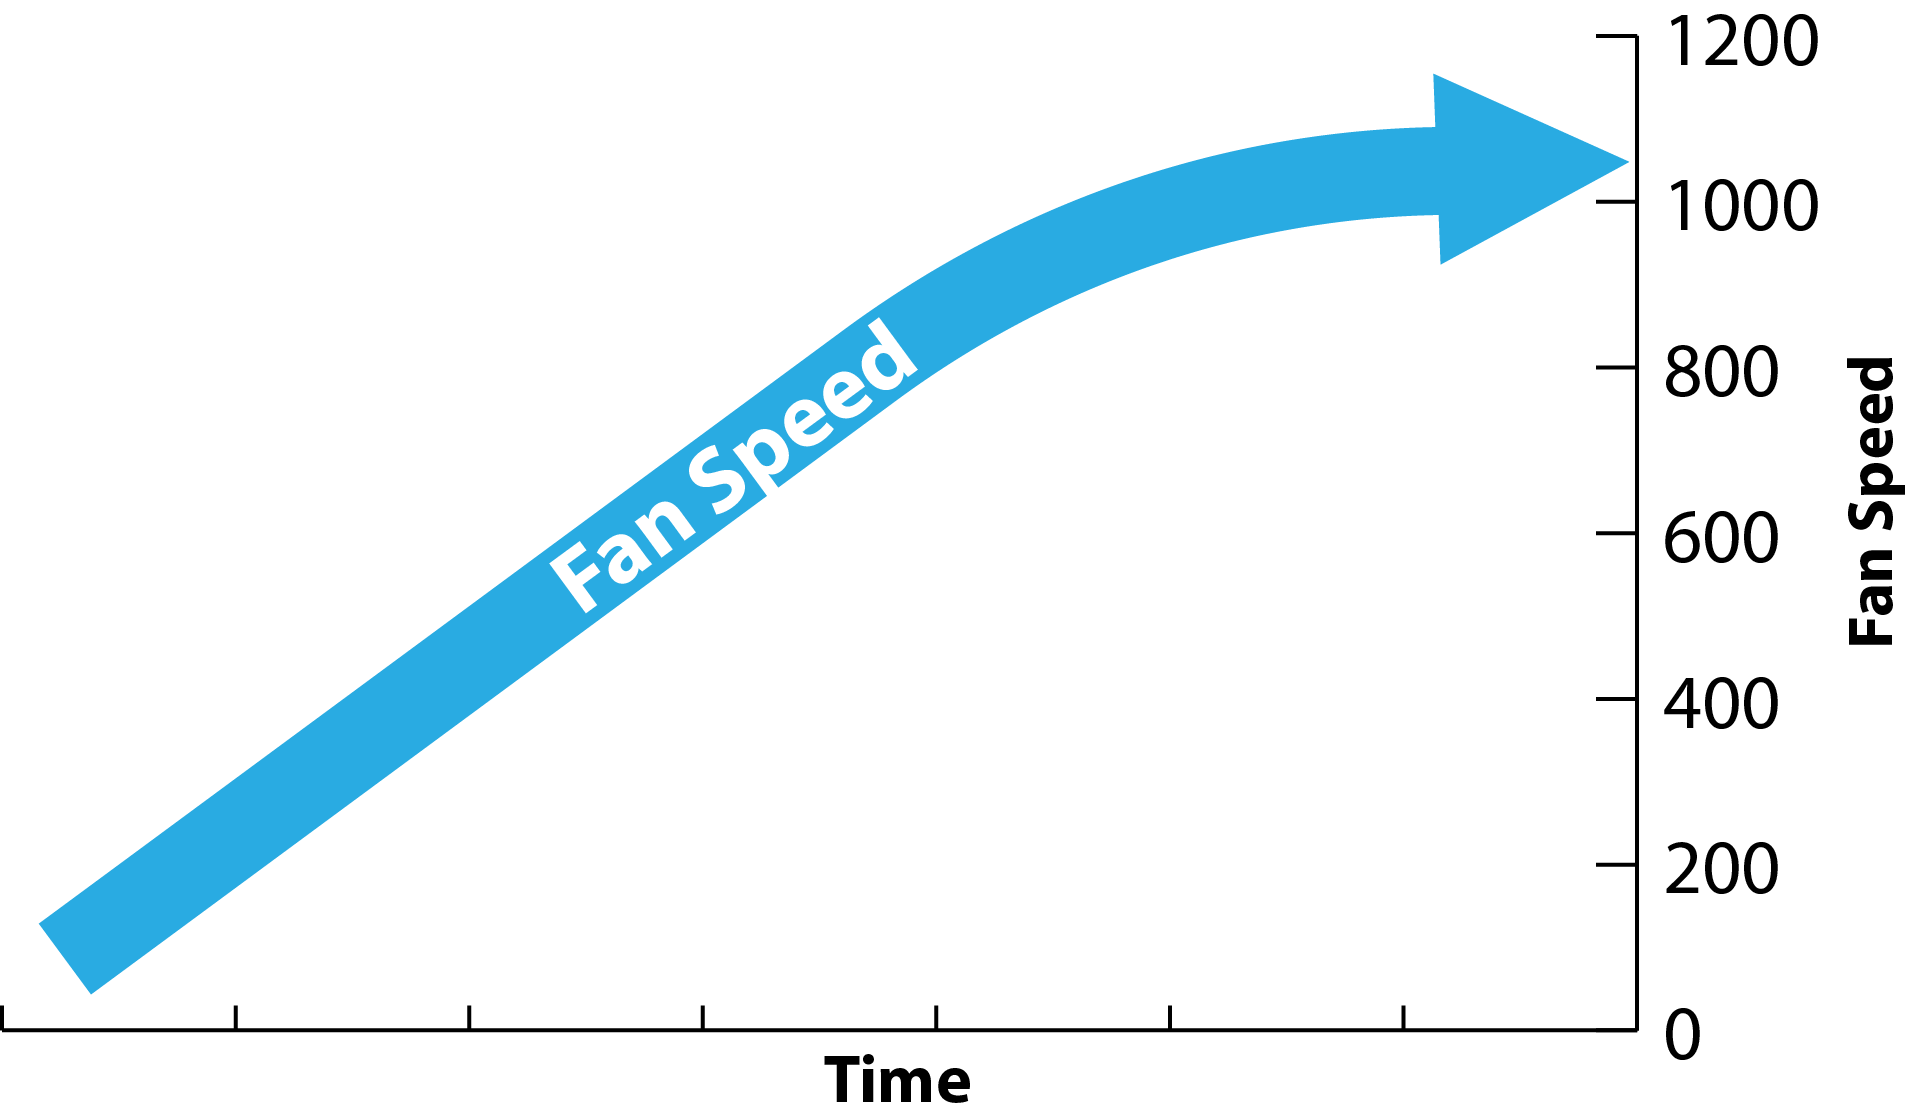 Gentle fan speedAsset 14x